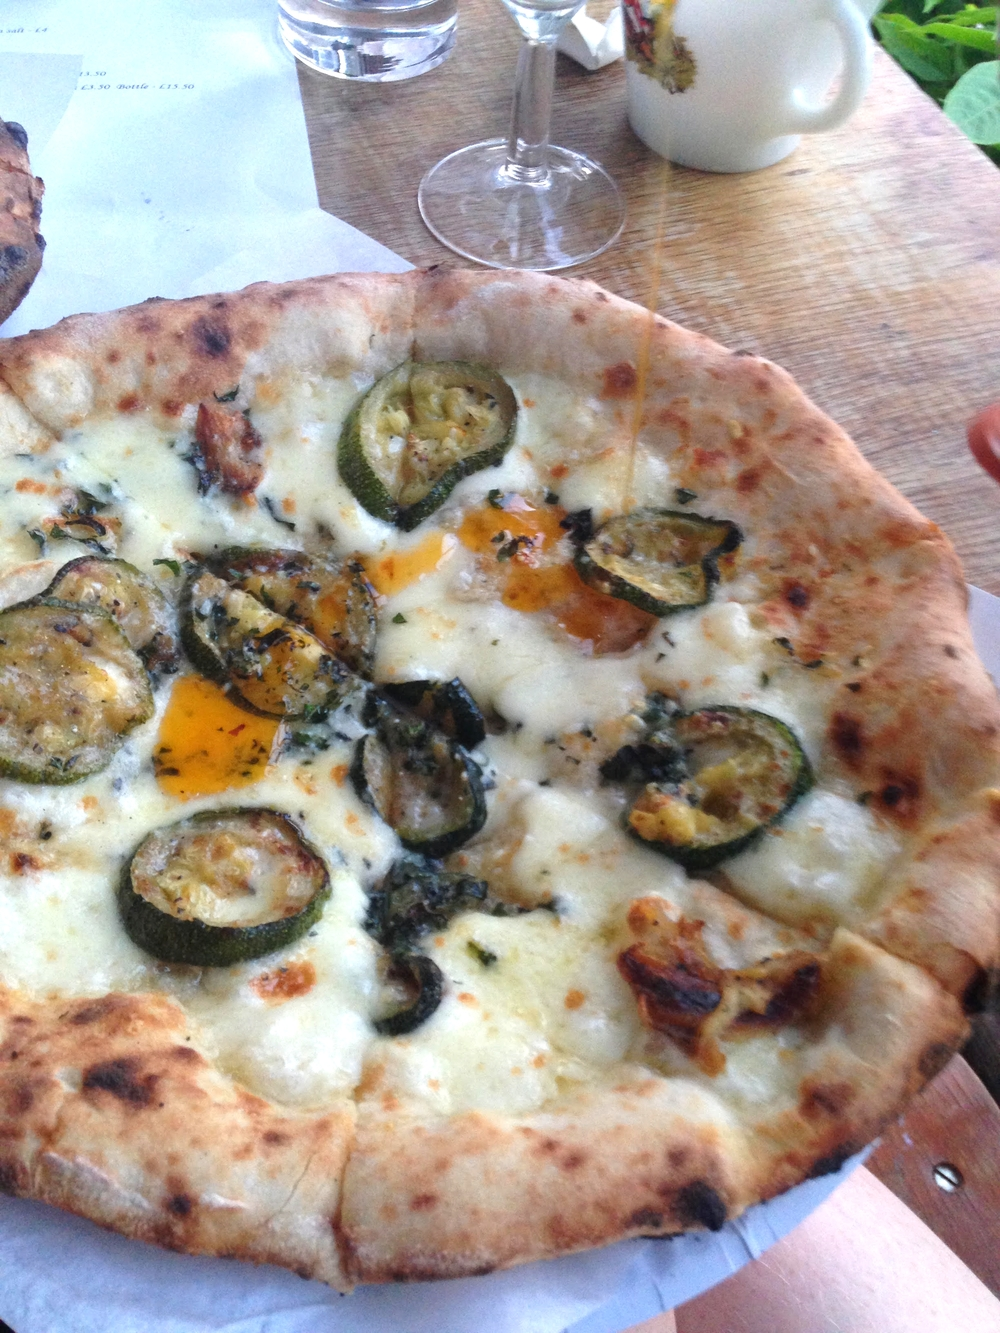 a special on at Van Dough - roasted courgette, garlic and oregano